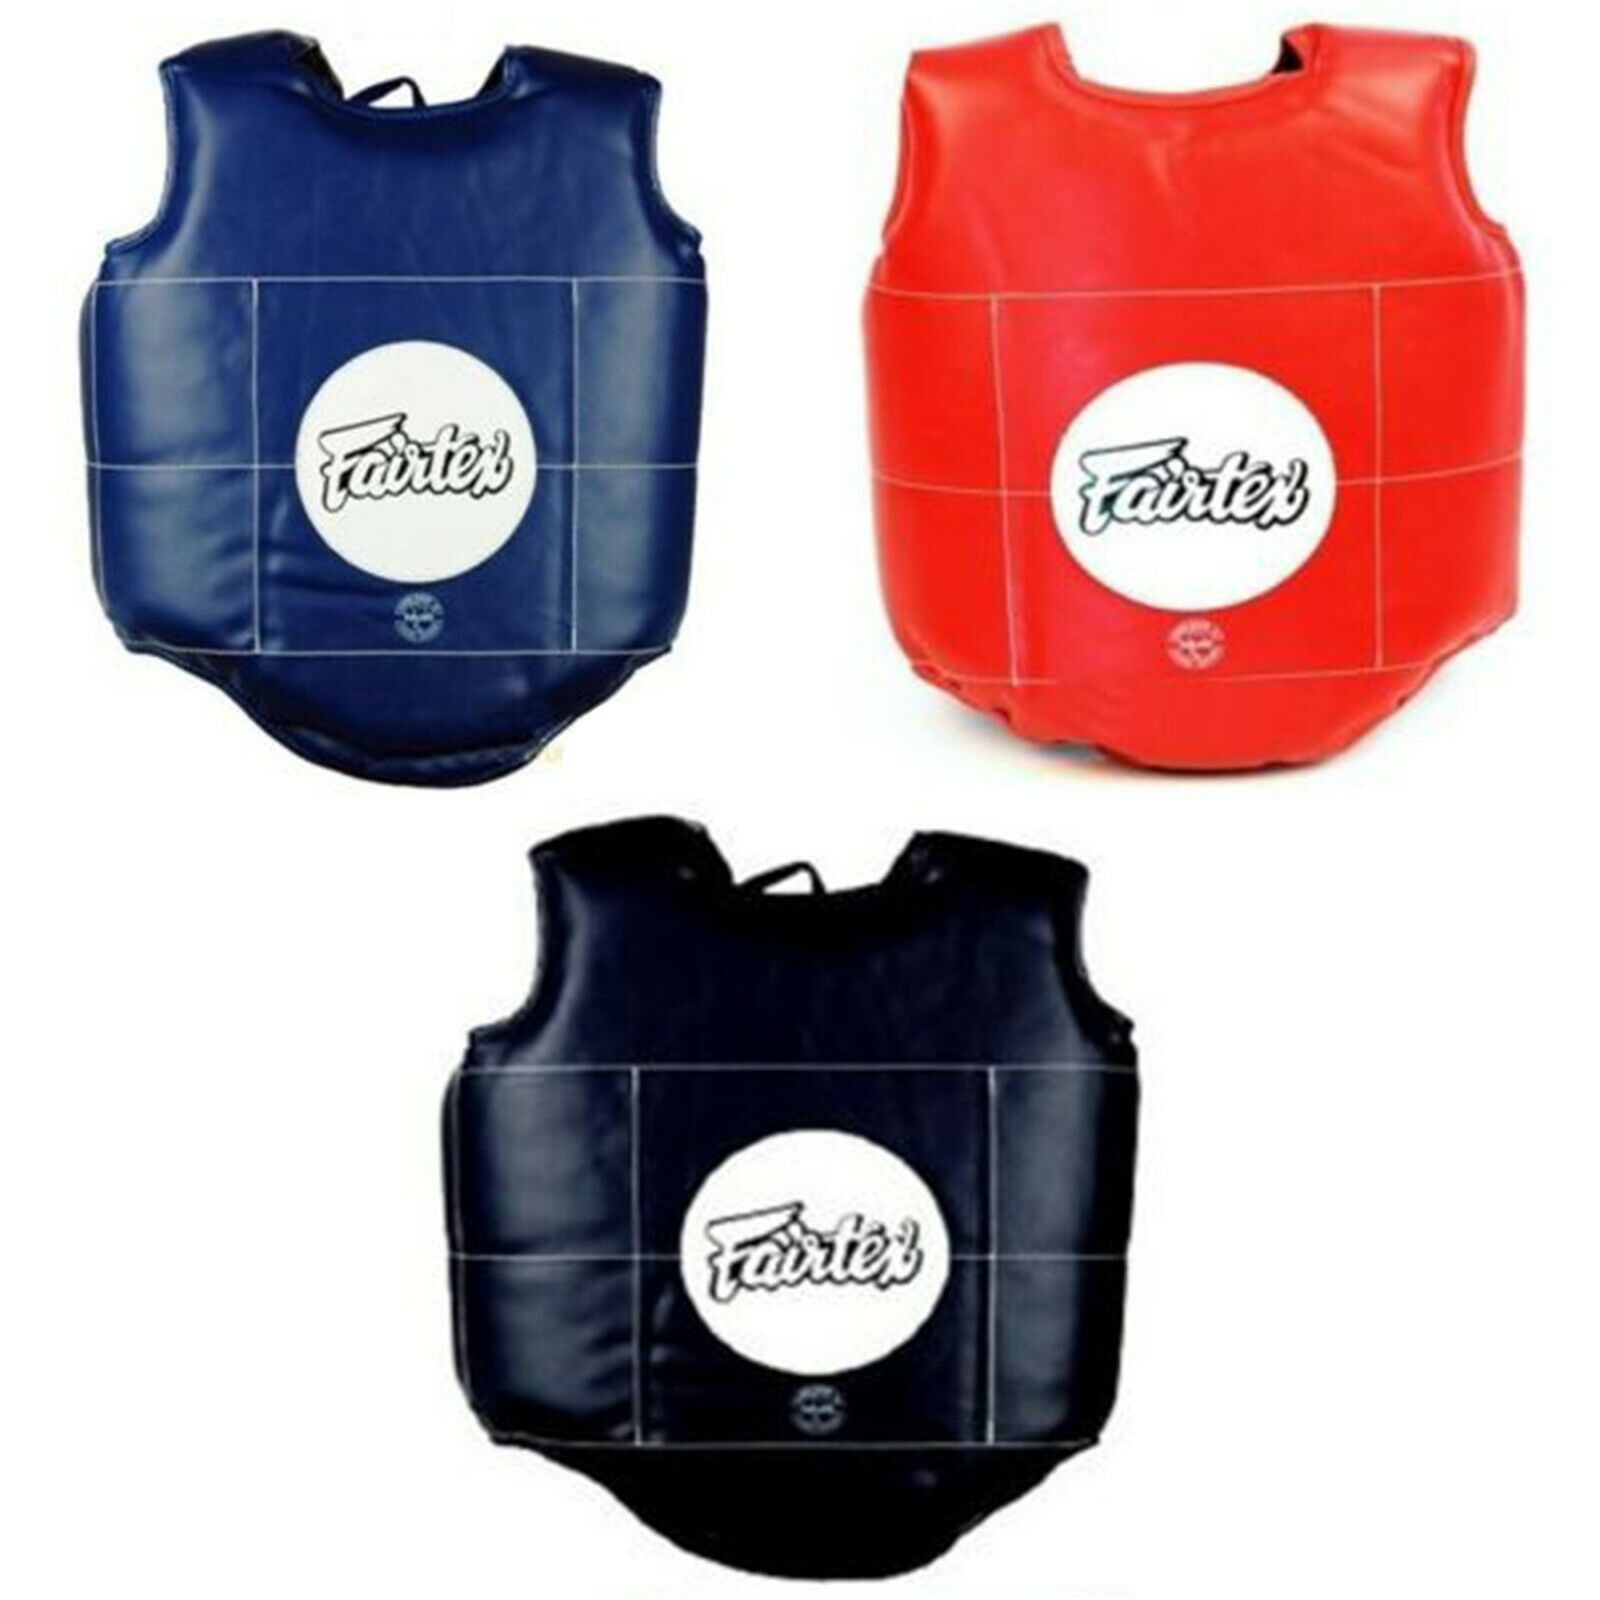 FAIRTEX PV1 BODY GUARDS PredECTOR PADS MUAY THAI BOXING MMA